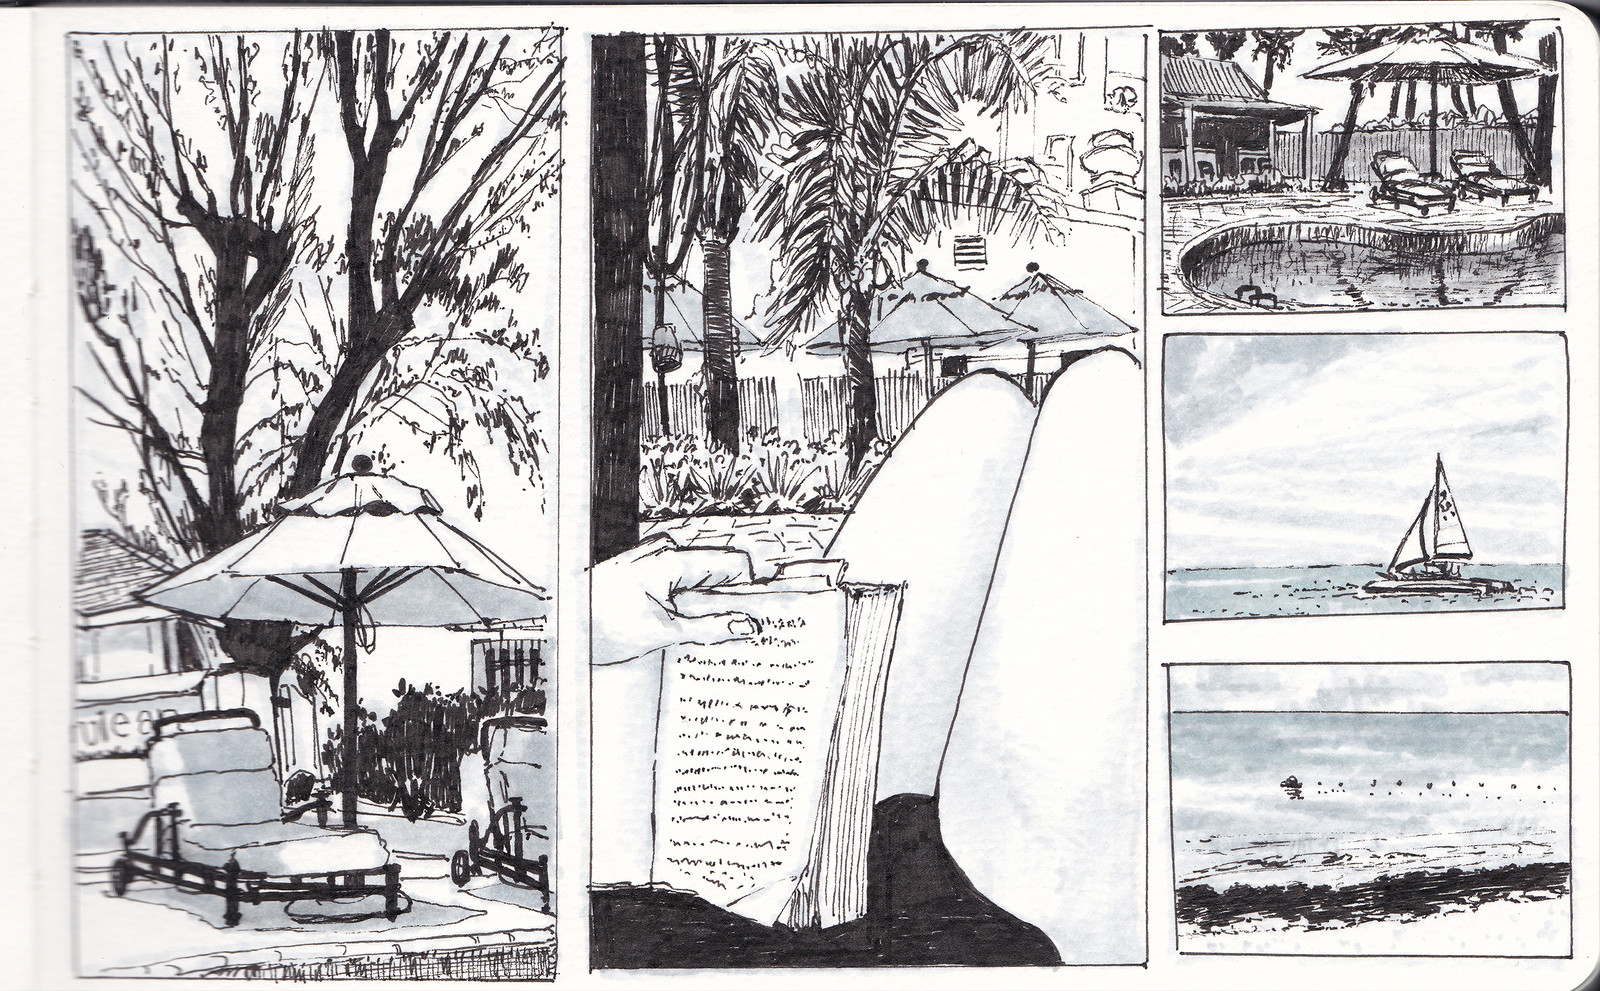 Barbados Honeymoon Sketches